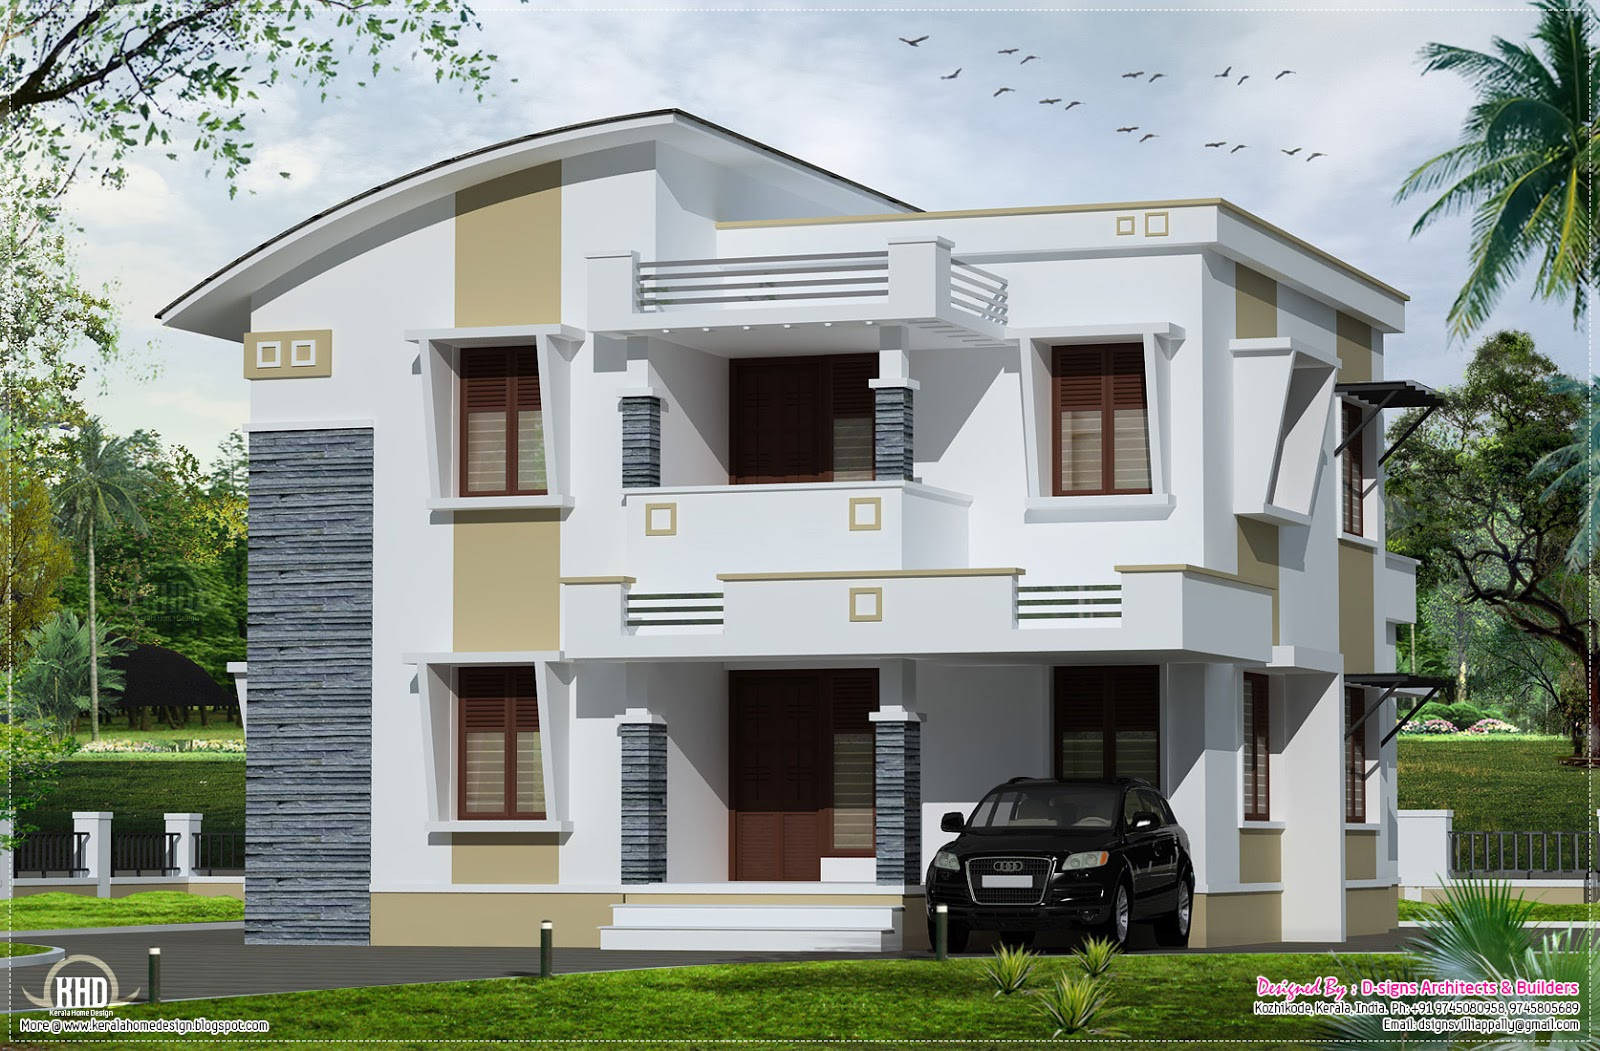 Simple flat roof home design in 1800 kerala home for Basic house design